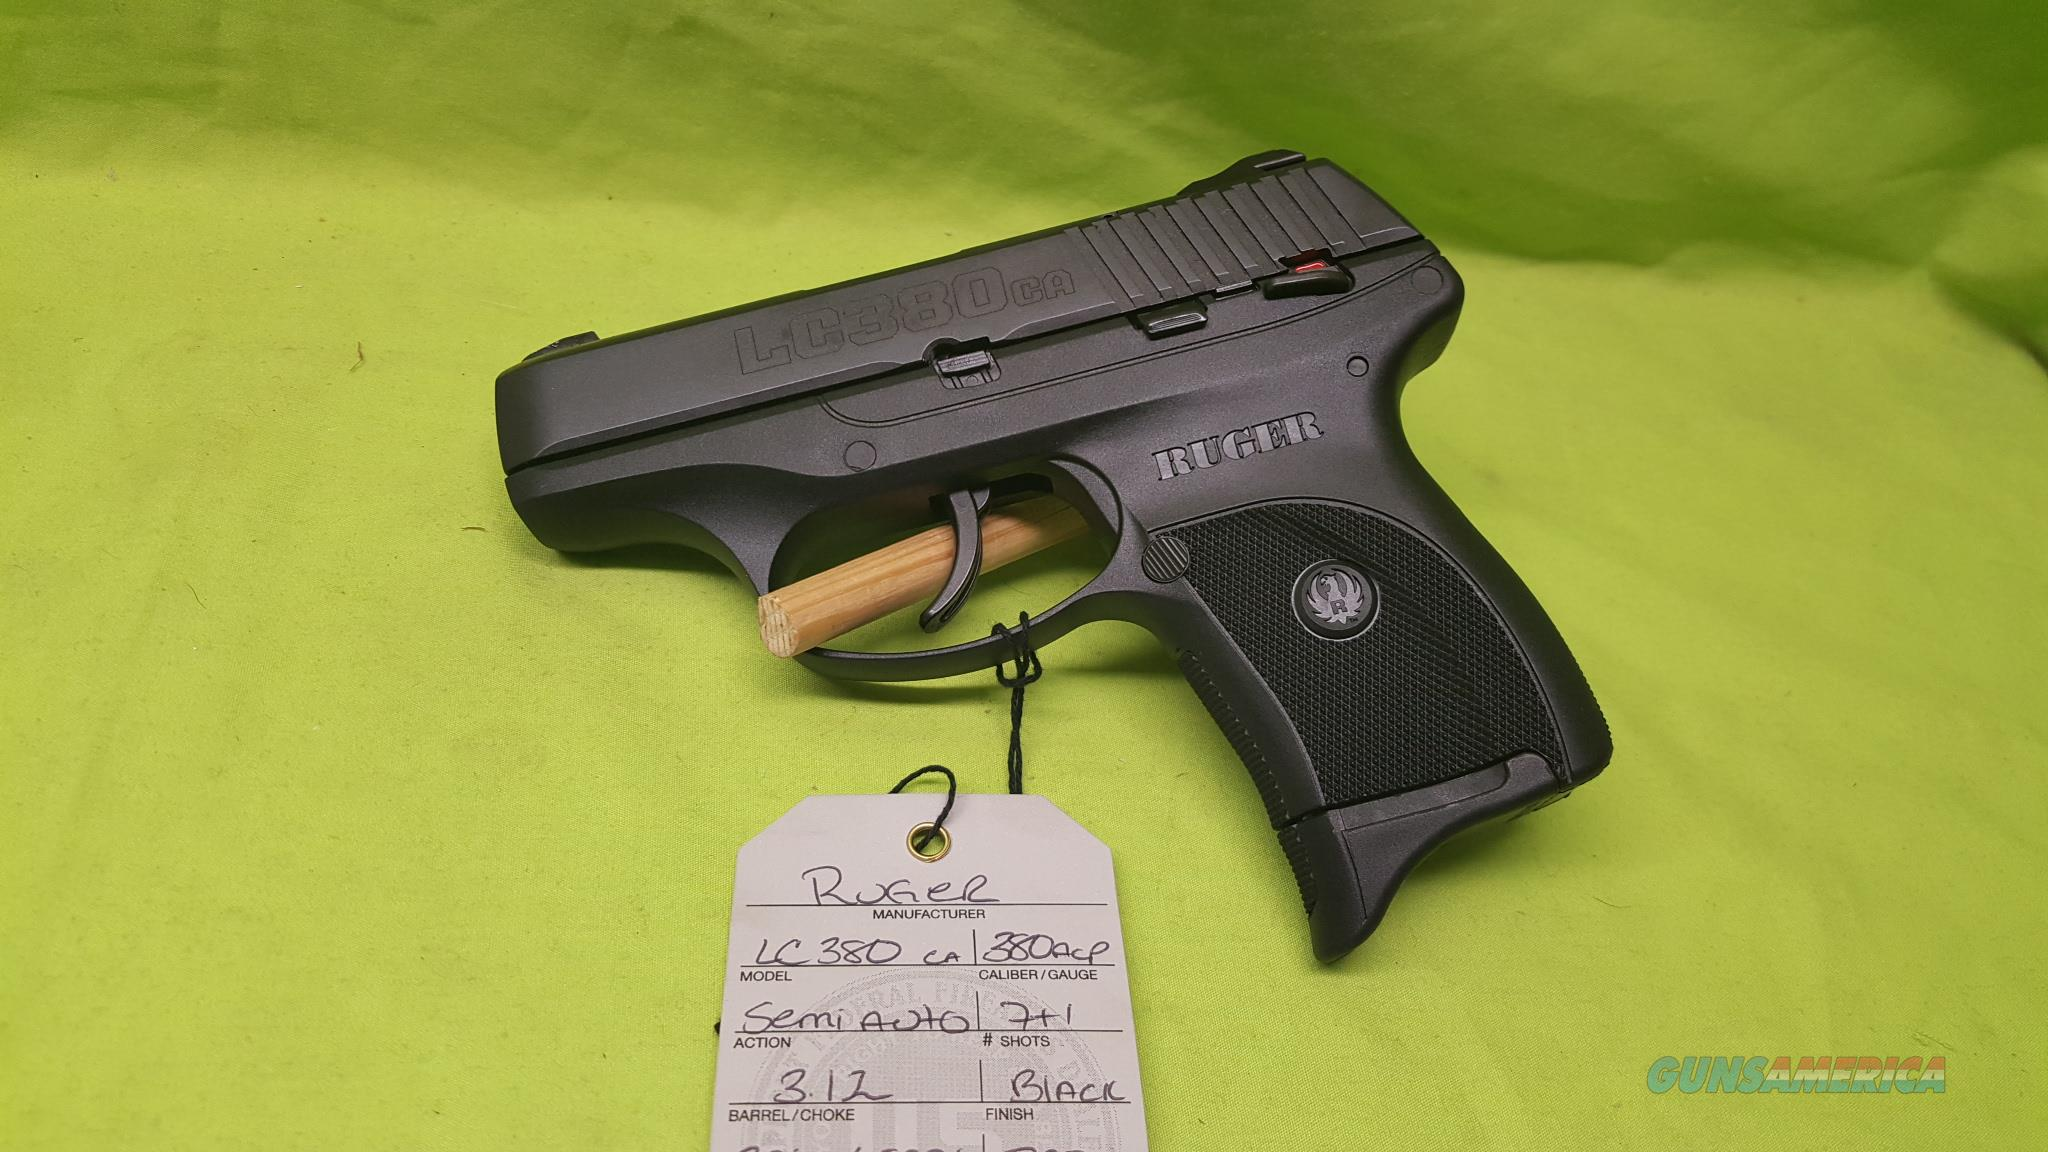 RUGER LC380CA LC380 CA LC 380 ACP BLK 7RD 3253  Guns > Pistols > Ruger Semi-Auto Pistols > LCP